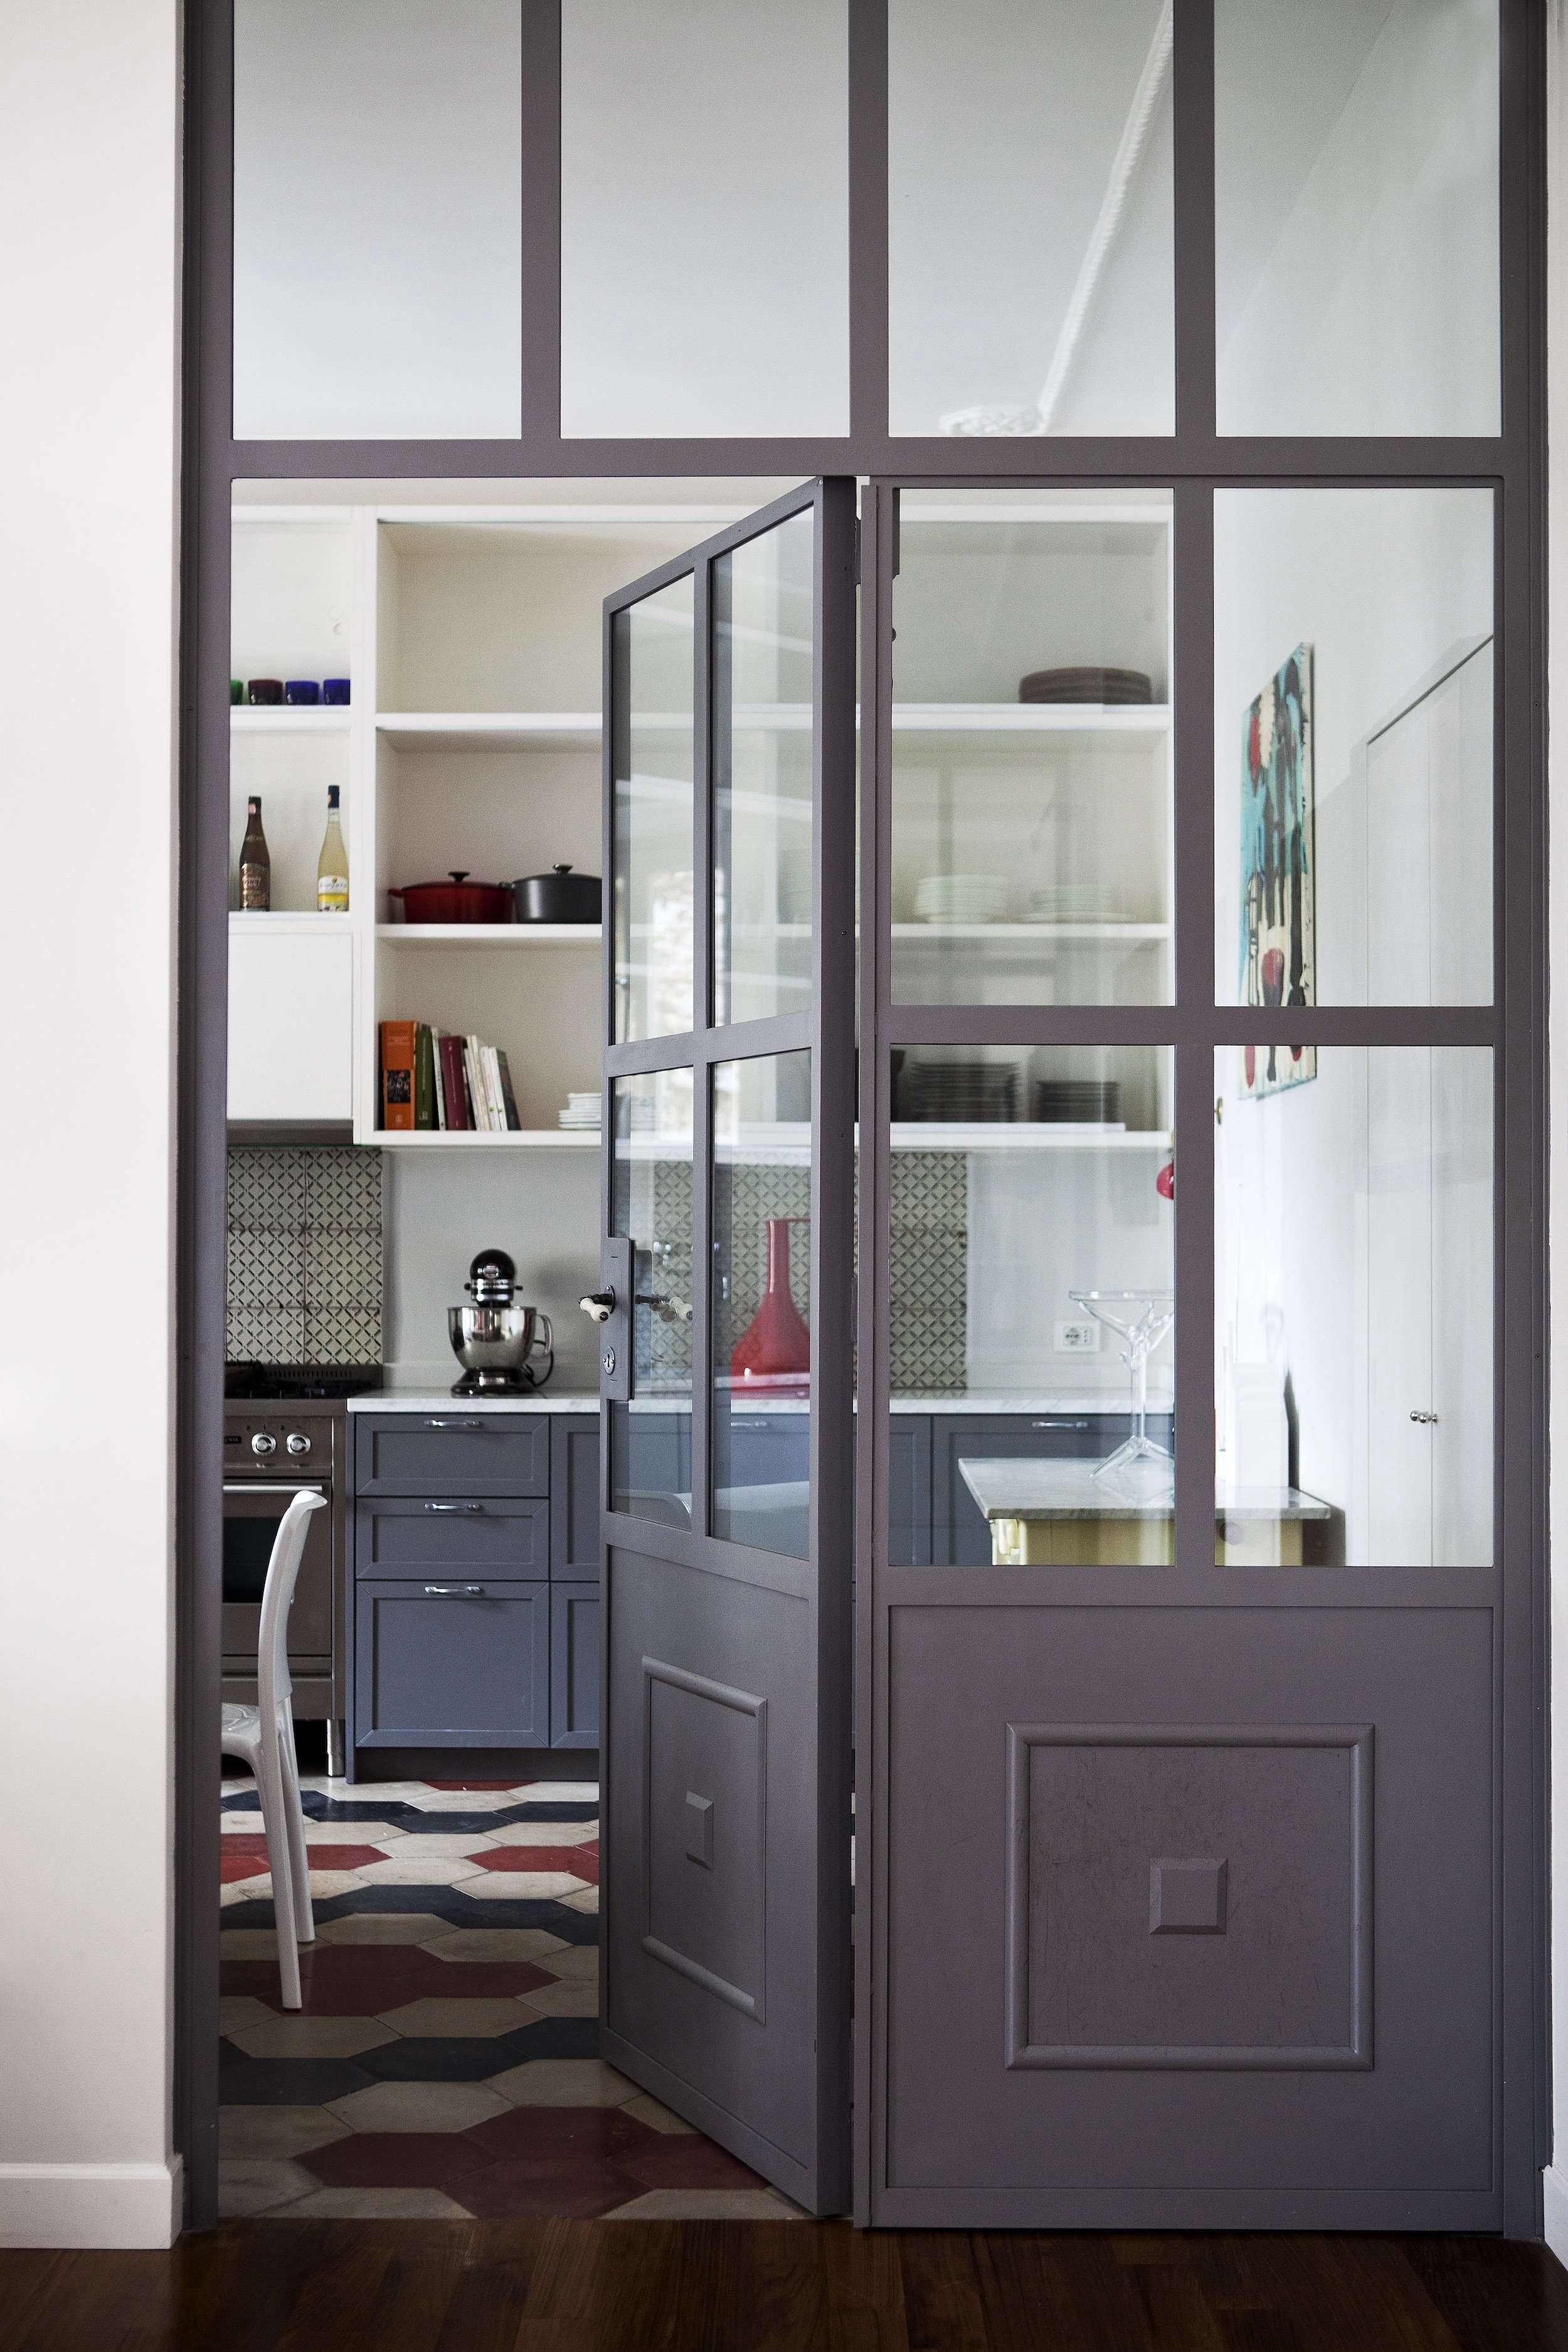 Roma: An Artful Twentieth-Century House in Italy in an Of-the-Moment Palette - Remodelista